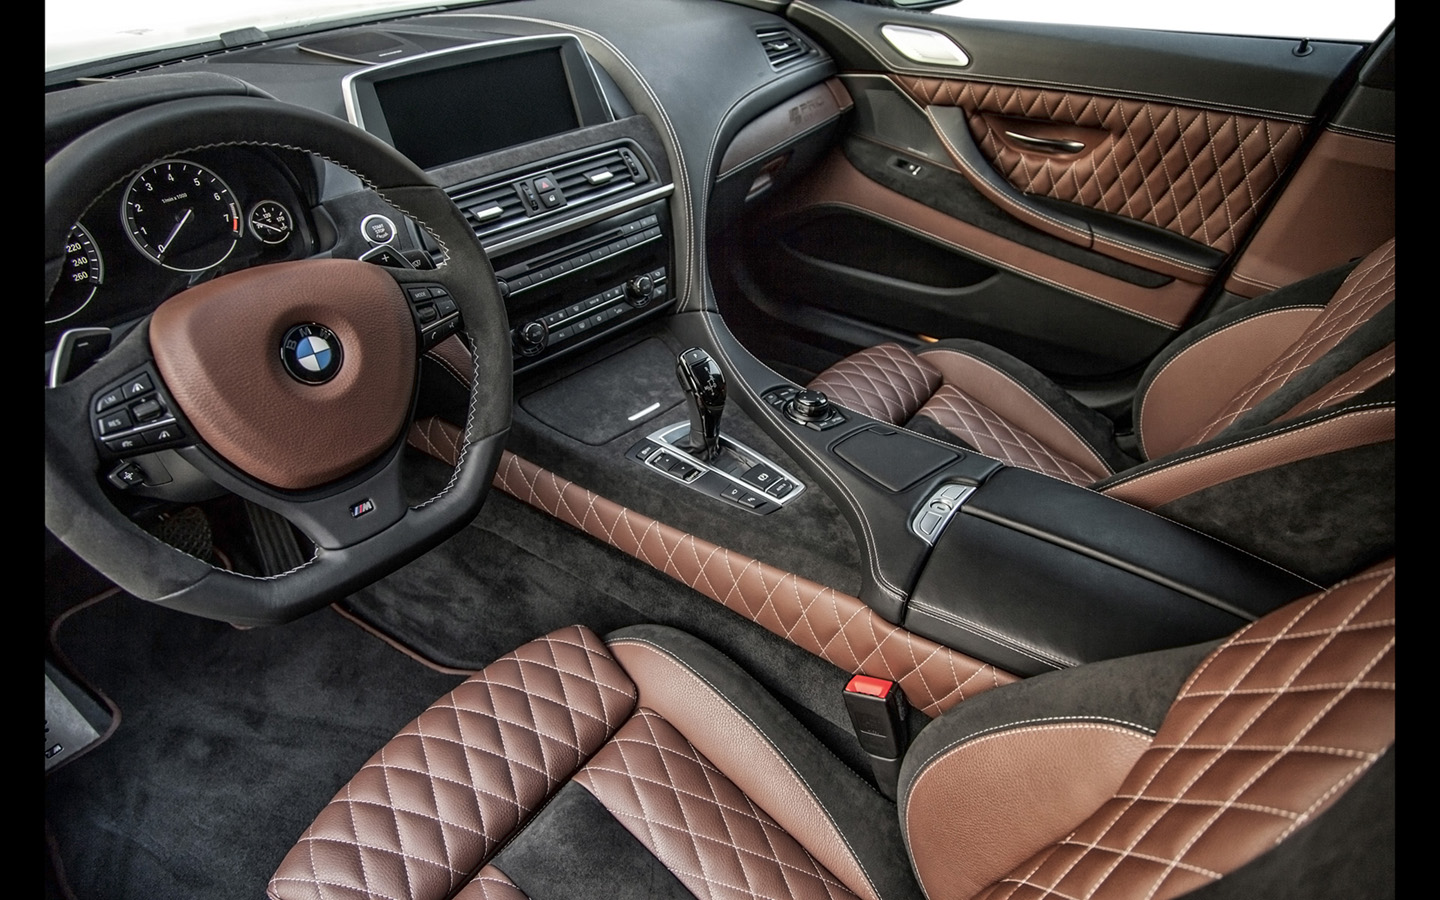 BMW Sedanu0027s Interior Design And Leather And Wood Style Were Built By  Bulgarian Artisans With Custom Wooden Touch Panels, ...